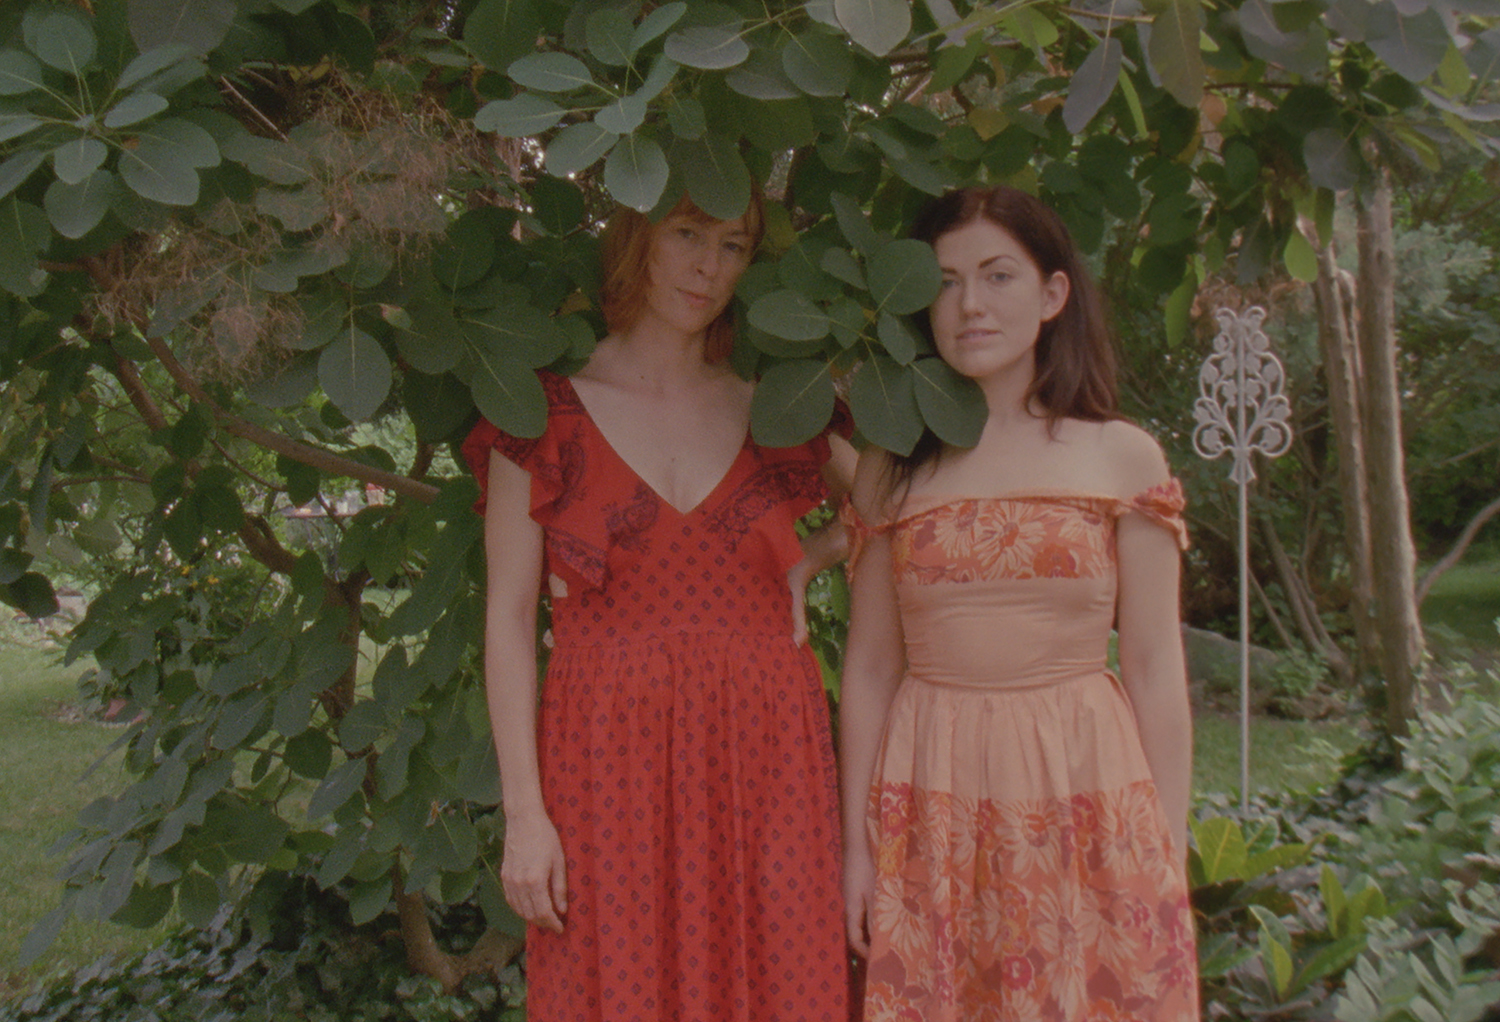 Selma Banich and Penelope Hearne in Creature Companion, 2018, Directed by Melika Bass.